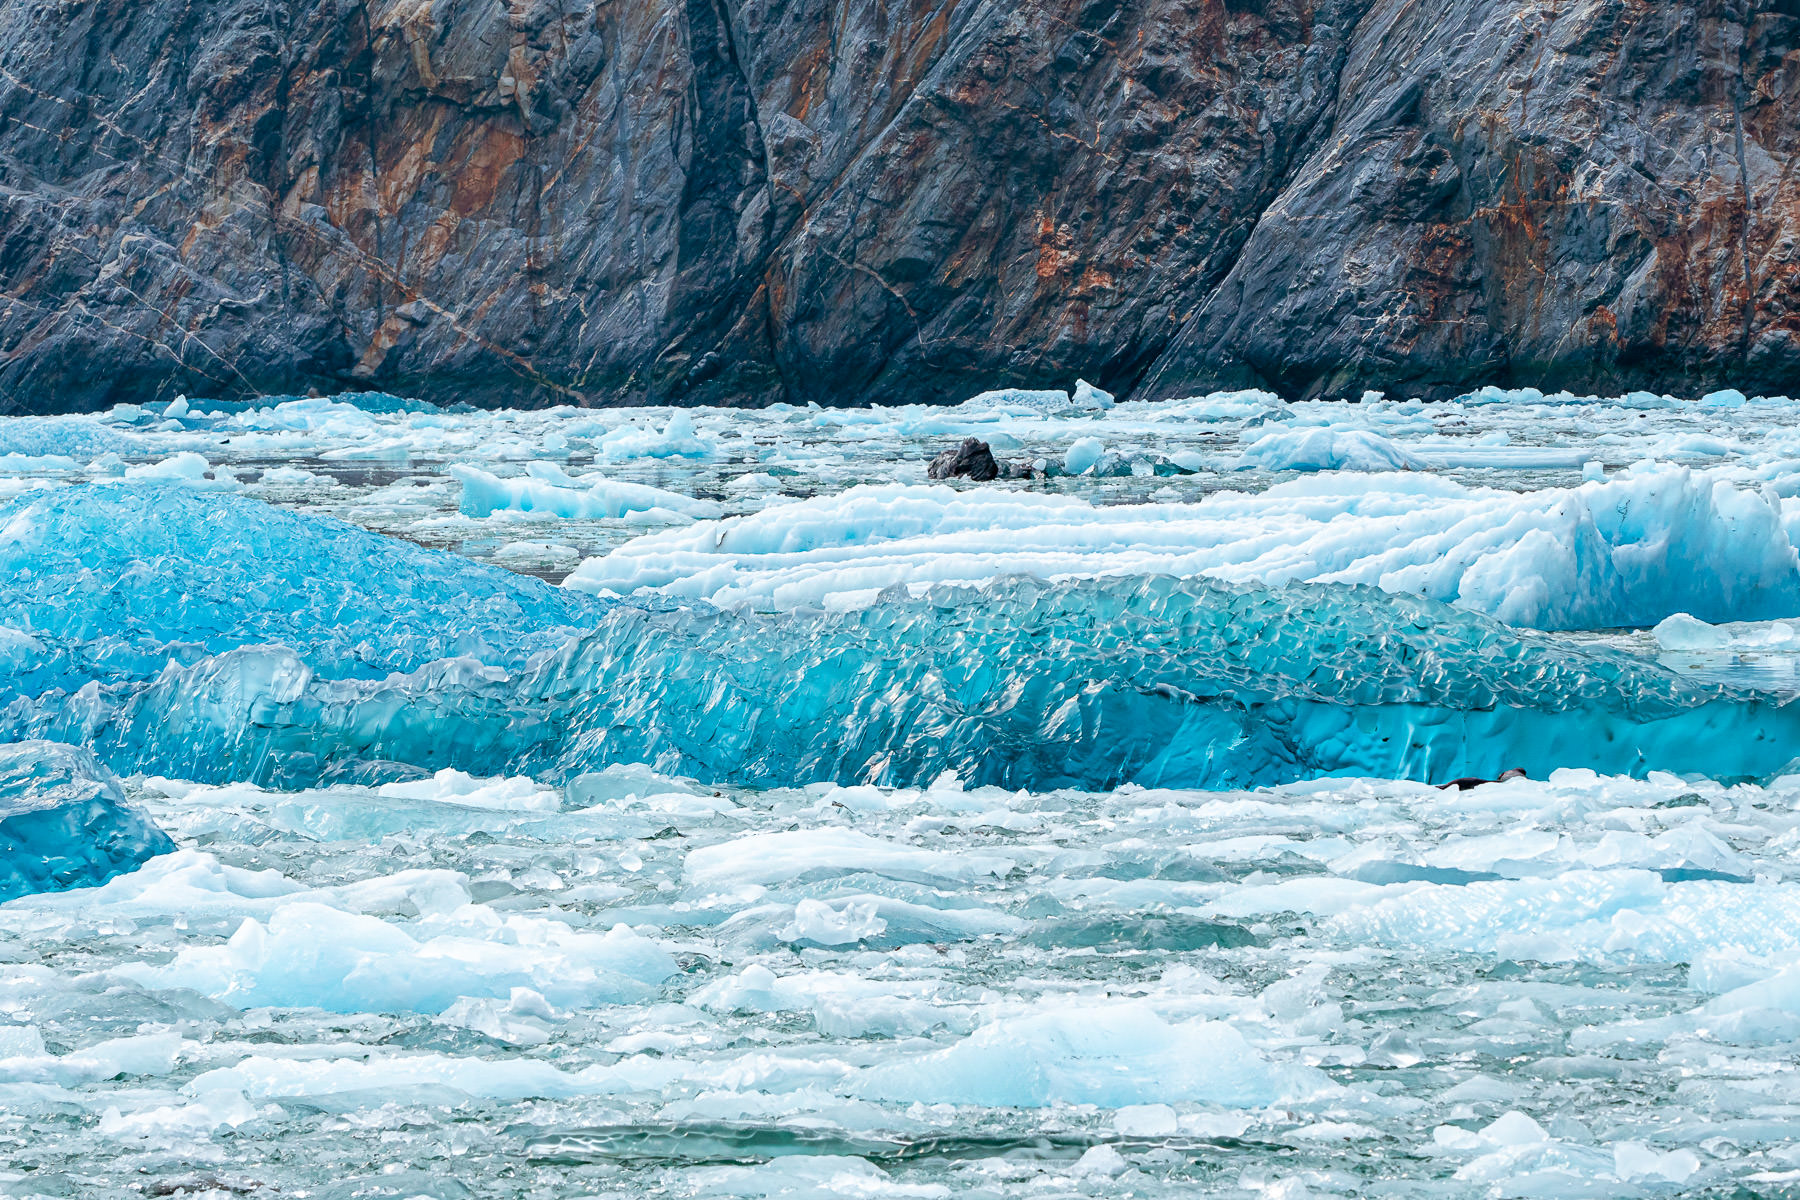 Cerulean ice floats in Tracy Arm Fjord, Alaska, near the South Sawyer Glacier.